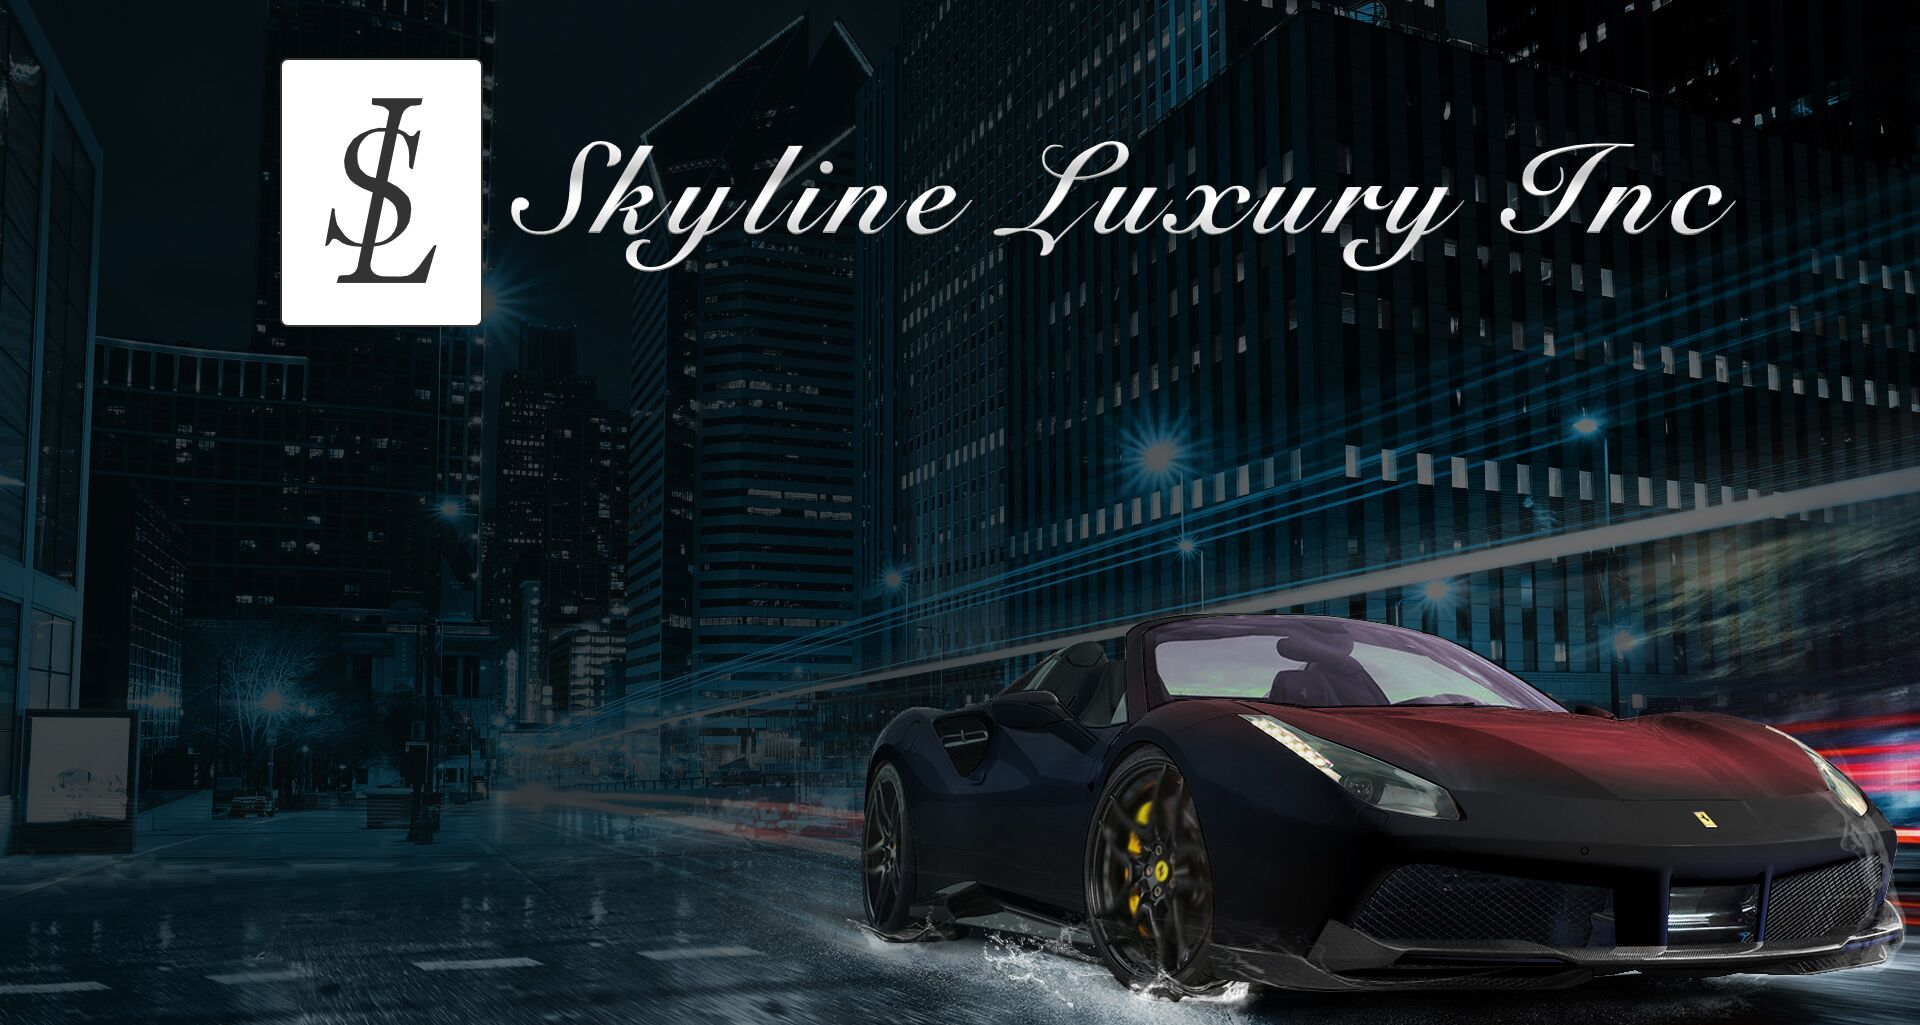 Skyline Luxury Inc